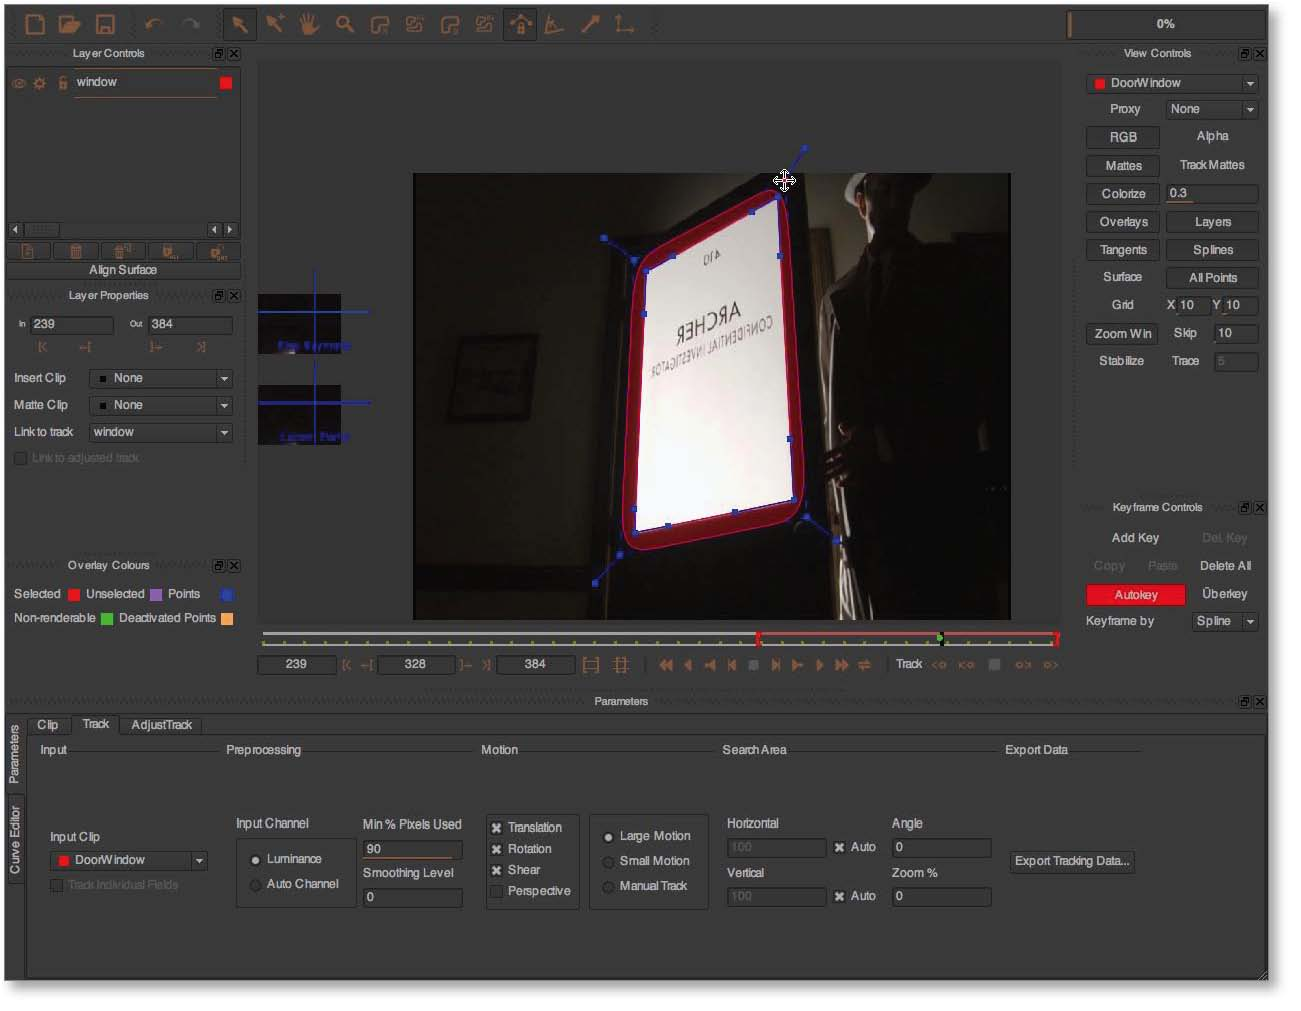 adobe after effects templates torrent - adobe after effects cs4 final patch cracked full tiistorex